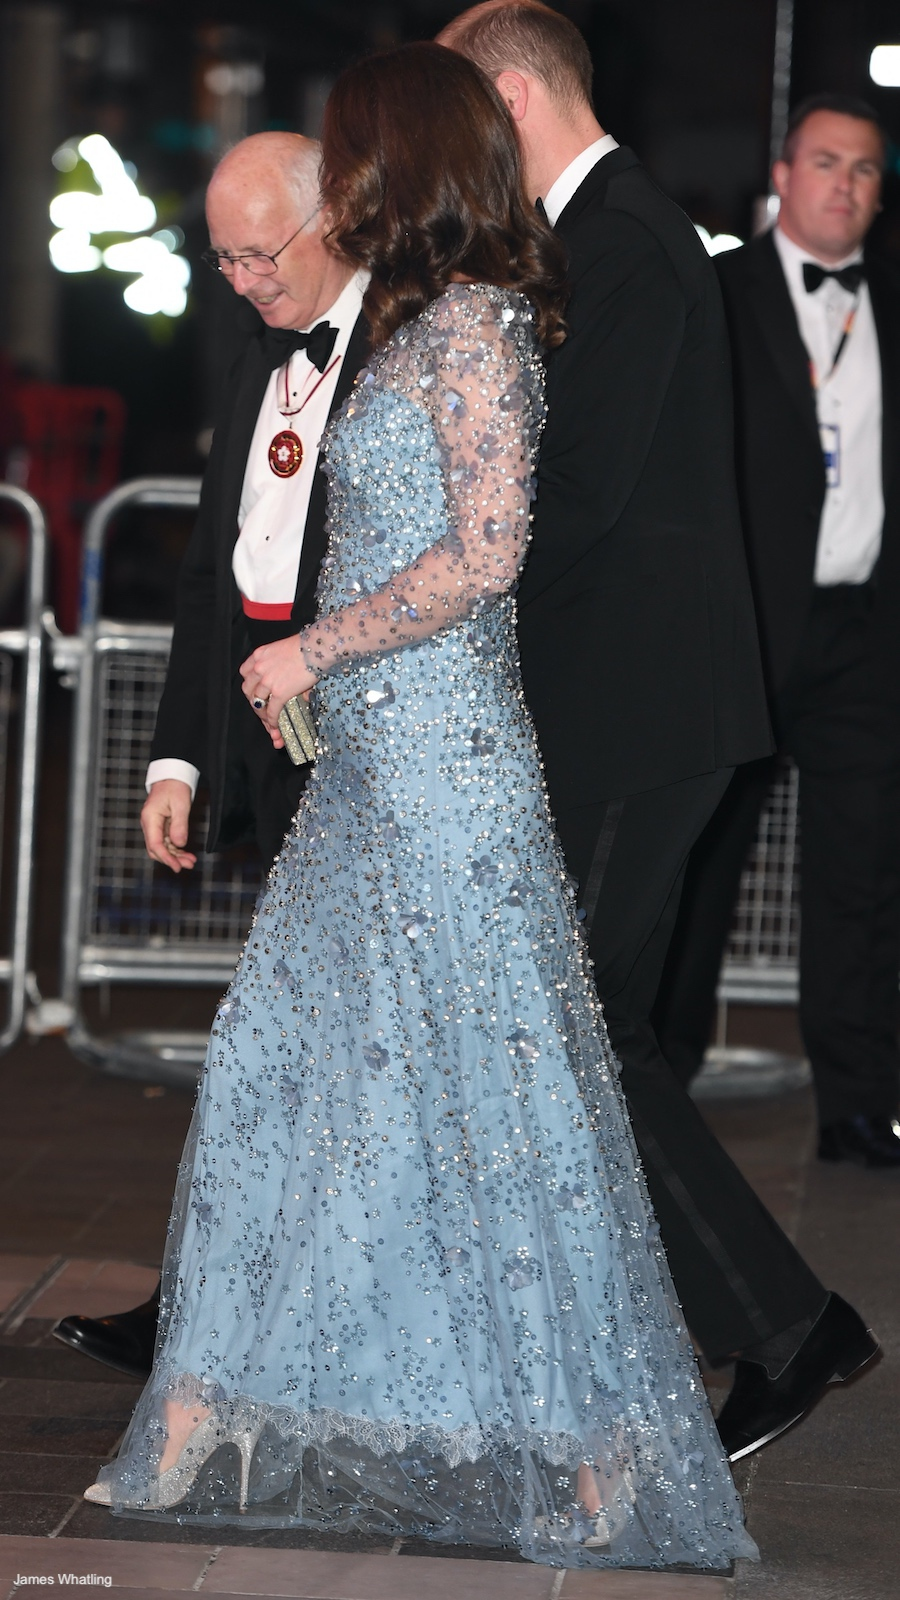 Kate Middleton at the Royal Variety Performance 2017